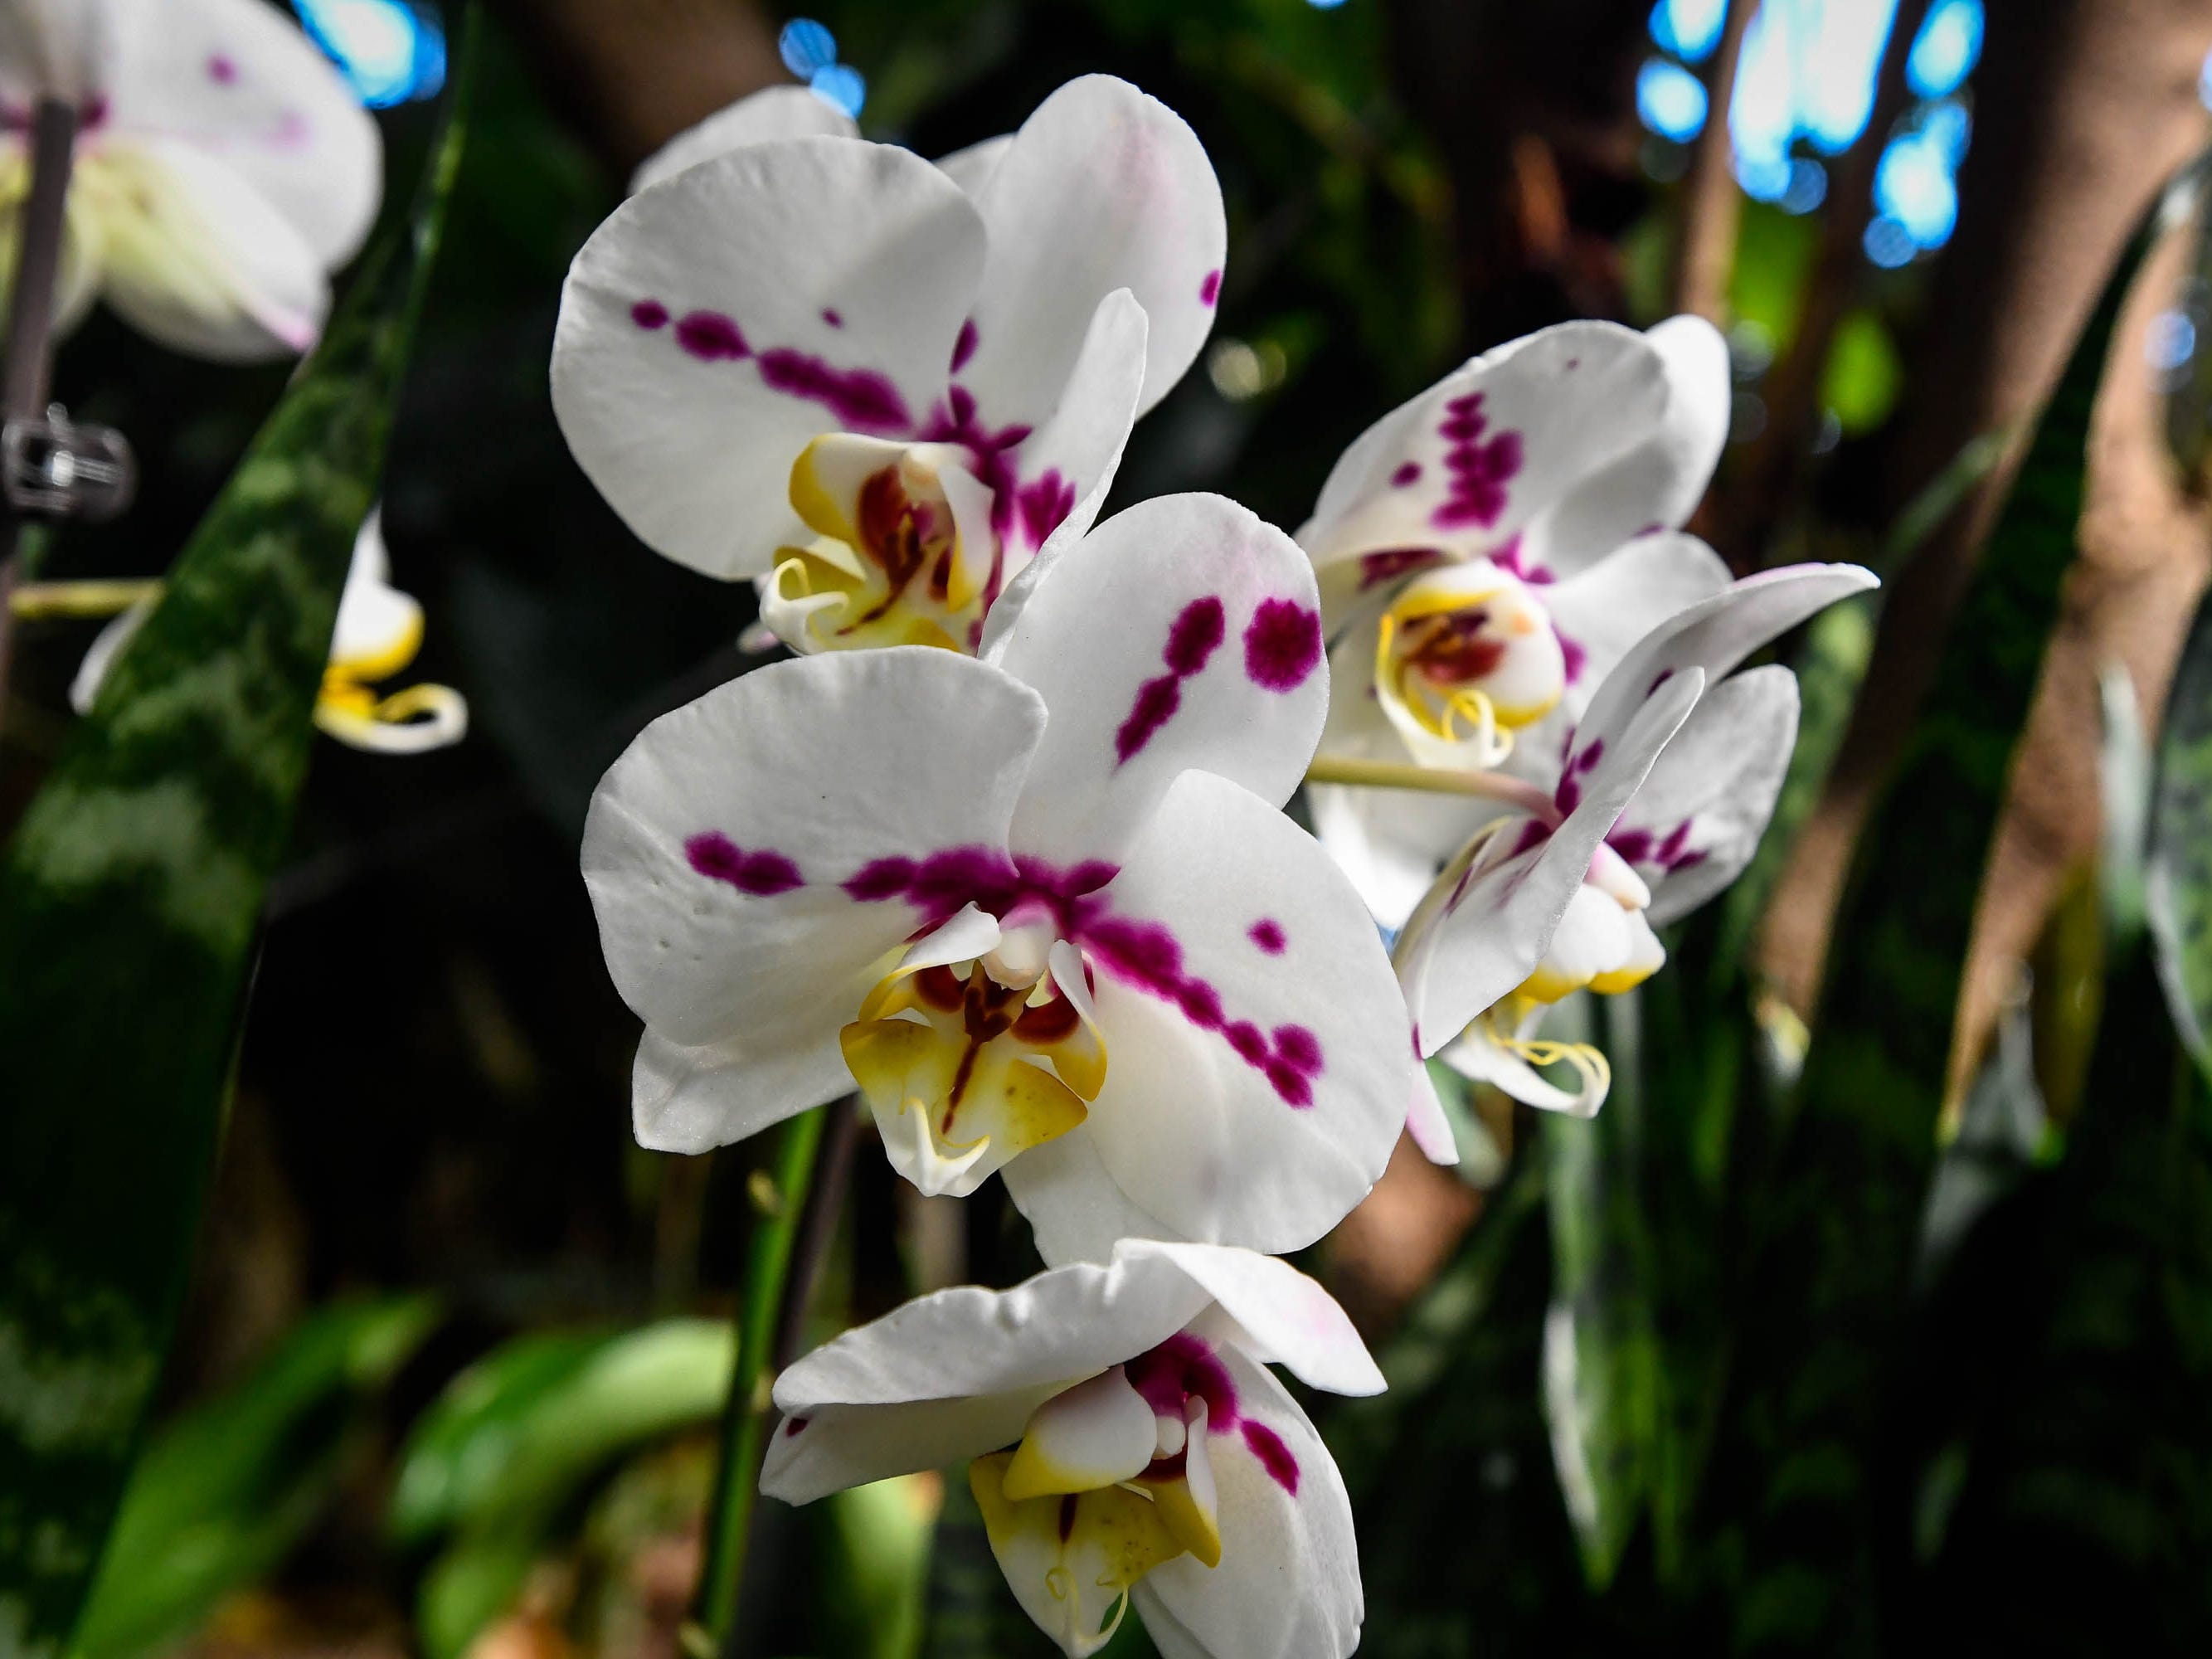 A variety of the Moth or Phalaenopsis Orchid on display in the Amazonia exhibit at Evansville's Mesker Park Zoo Friday, February 8, 2019.